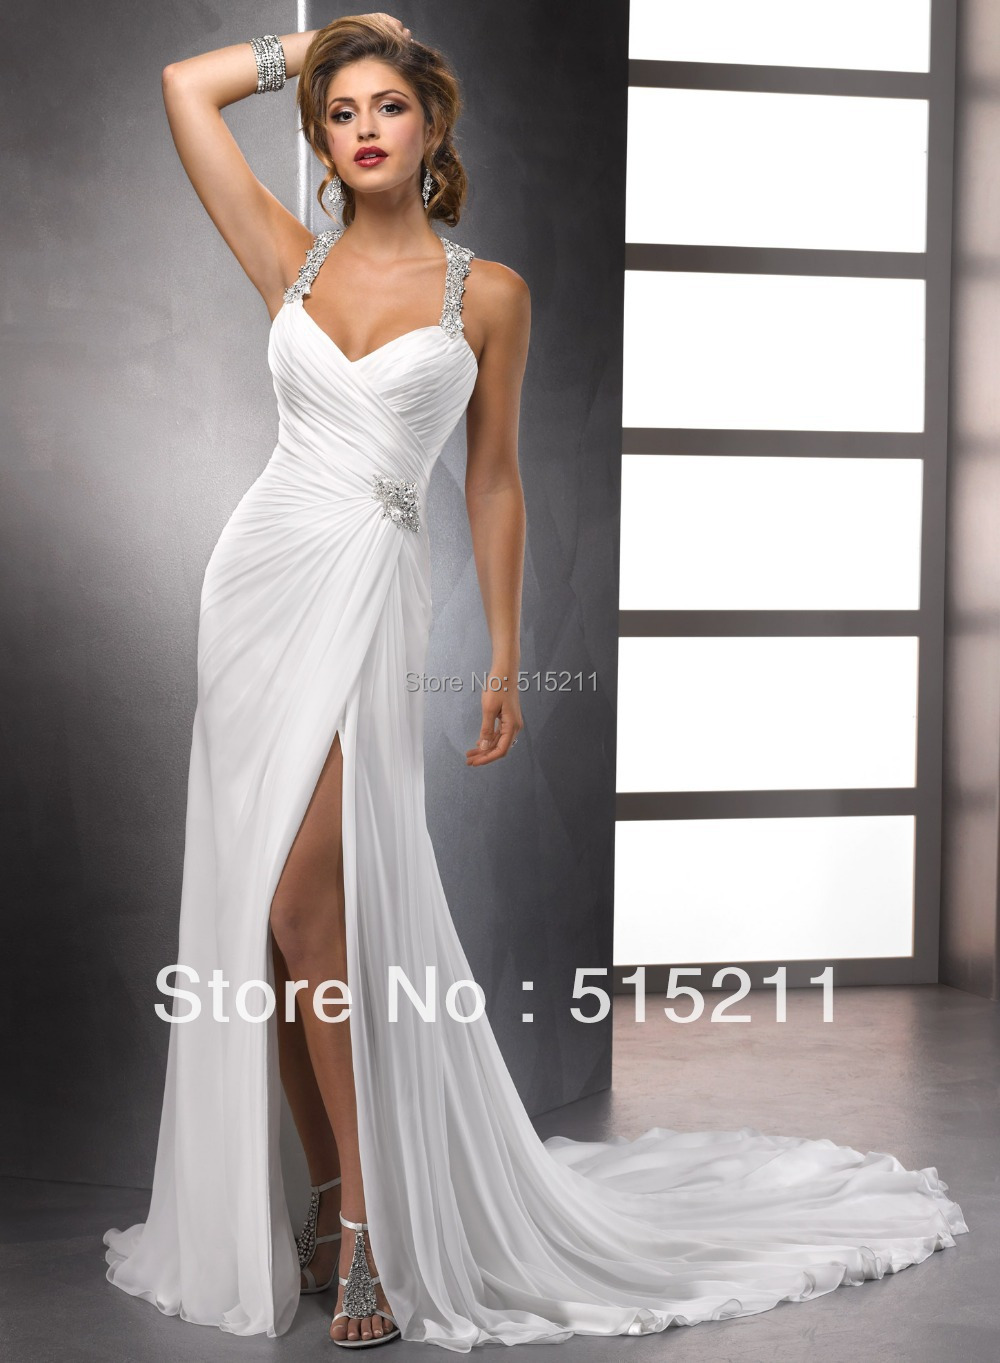 Online Get Cheap Halter Top Beach Wedding Dresses -Aliexpress.com ...